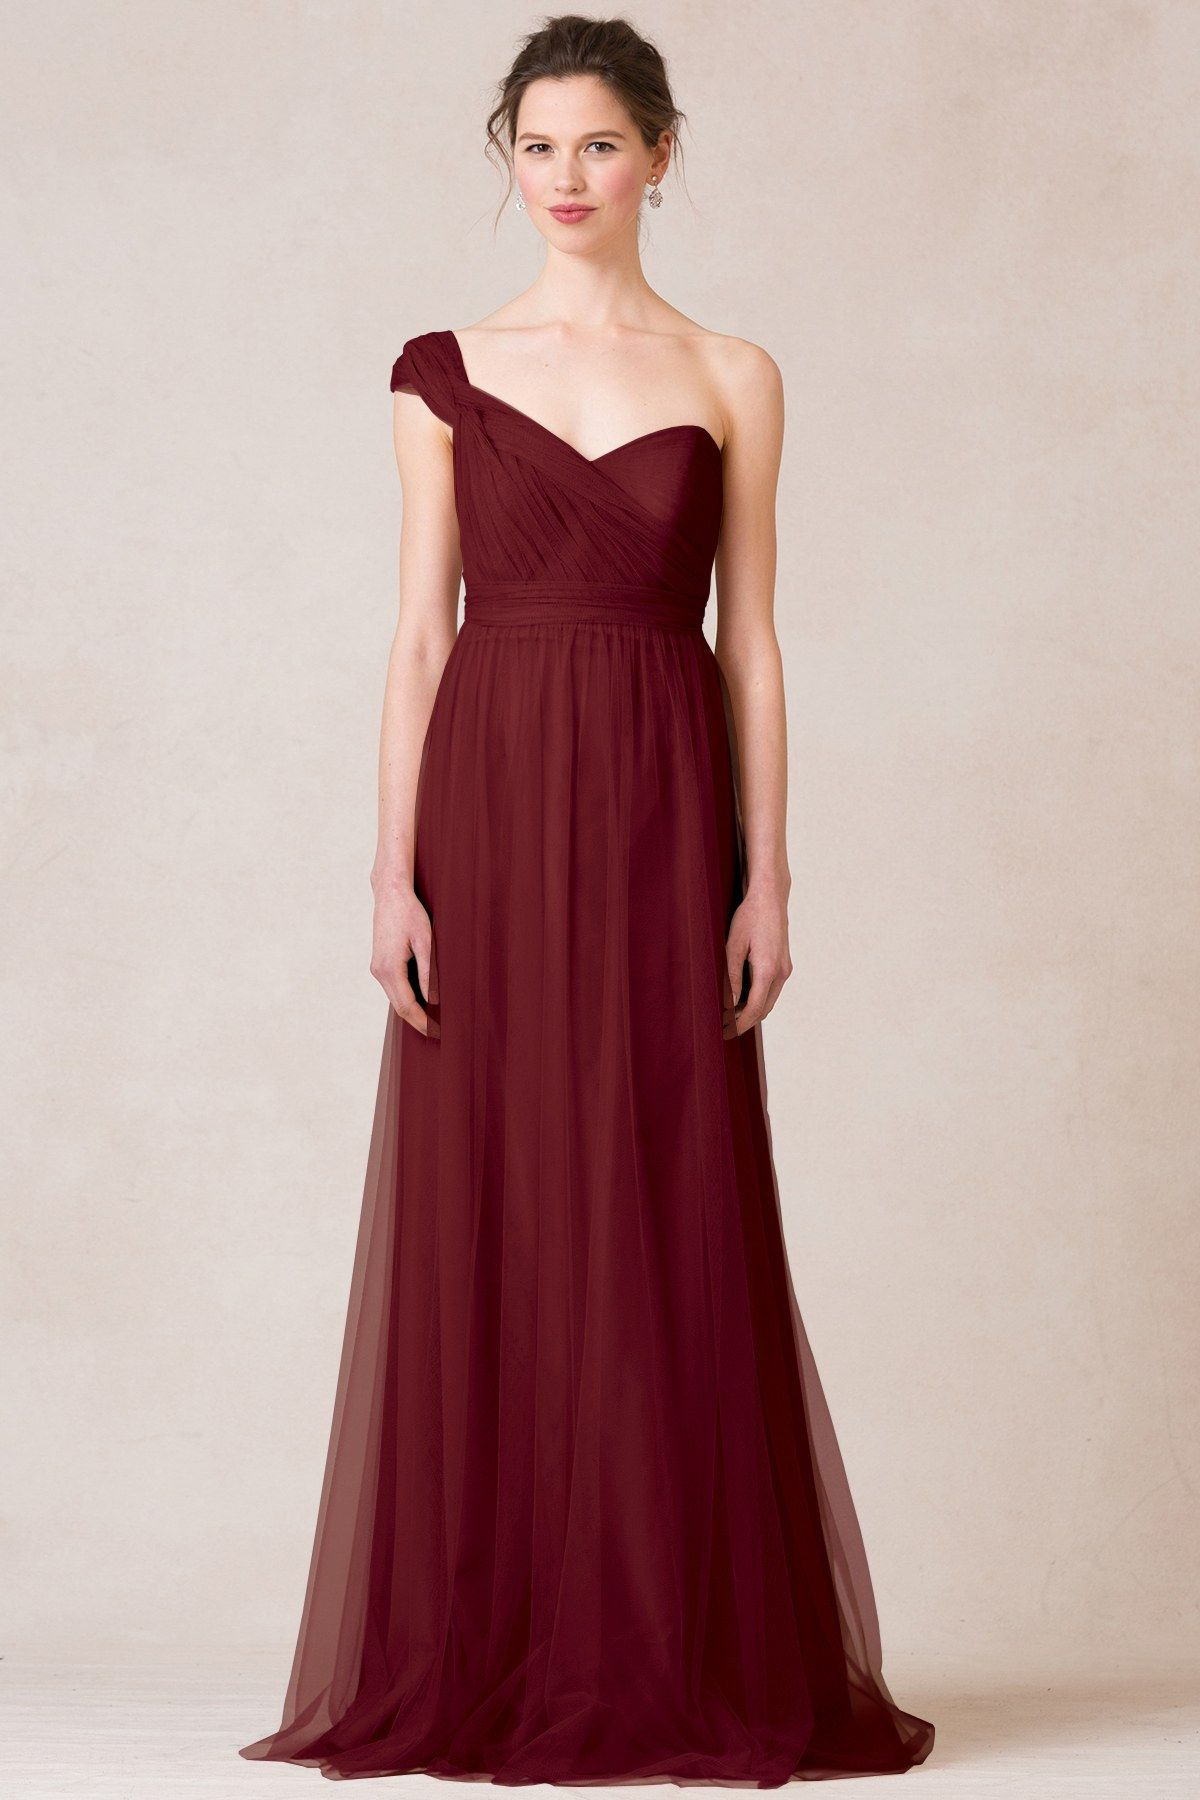 7 red bridesmaid dresses that are just perfect for a valentines annabelle convertible bridesmaid dress flattering fit for all shapes and sizes ombrellifo Choice Image